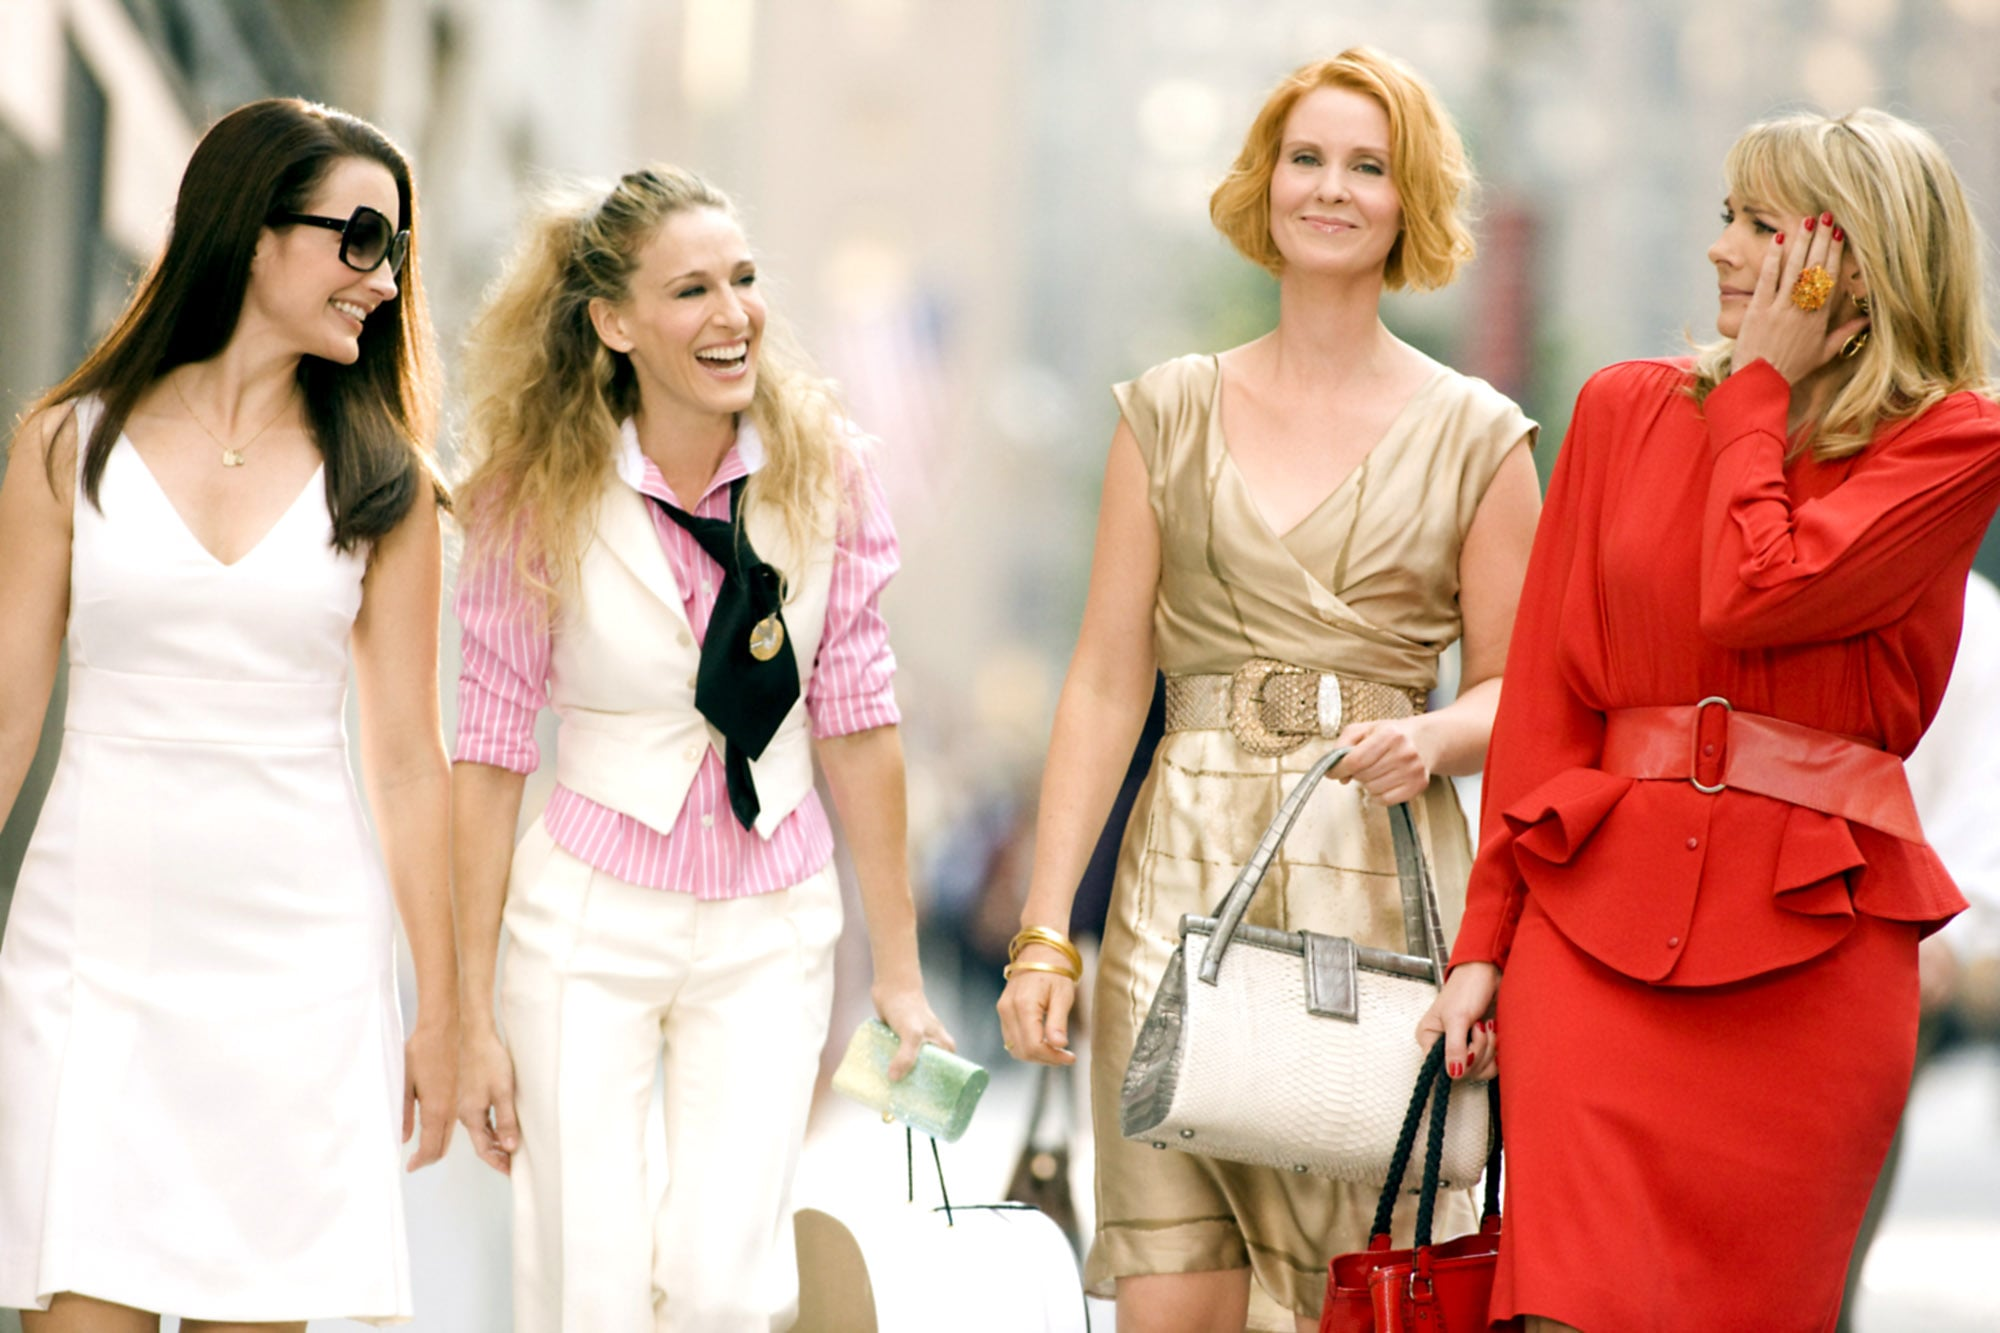 SEX AND THE CITY: THE MOVIE, Kristin Davis, Sarah Jessica Parker, Cynthia Nixon, Kim Cattrall, 2008. New Line Cinema/courtesy Everett Collection